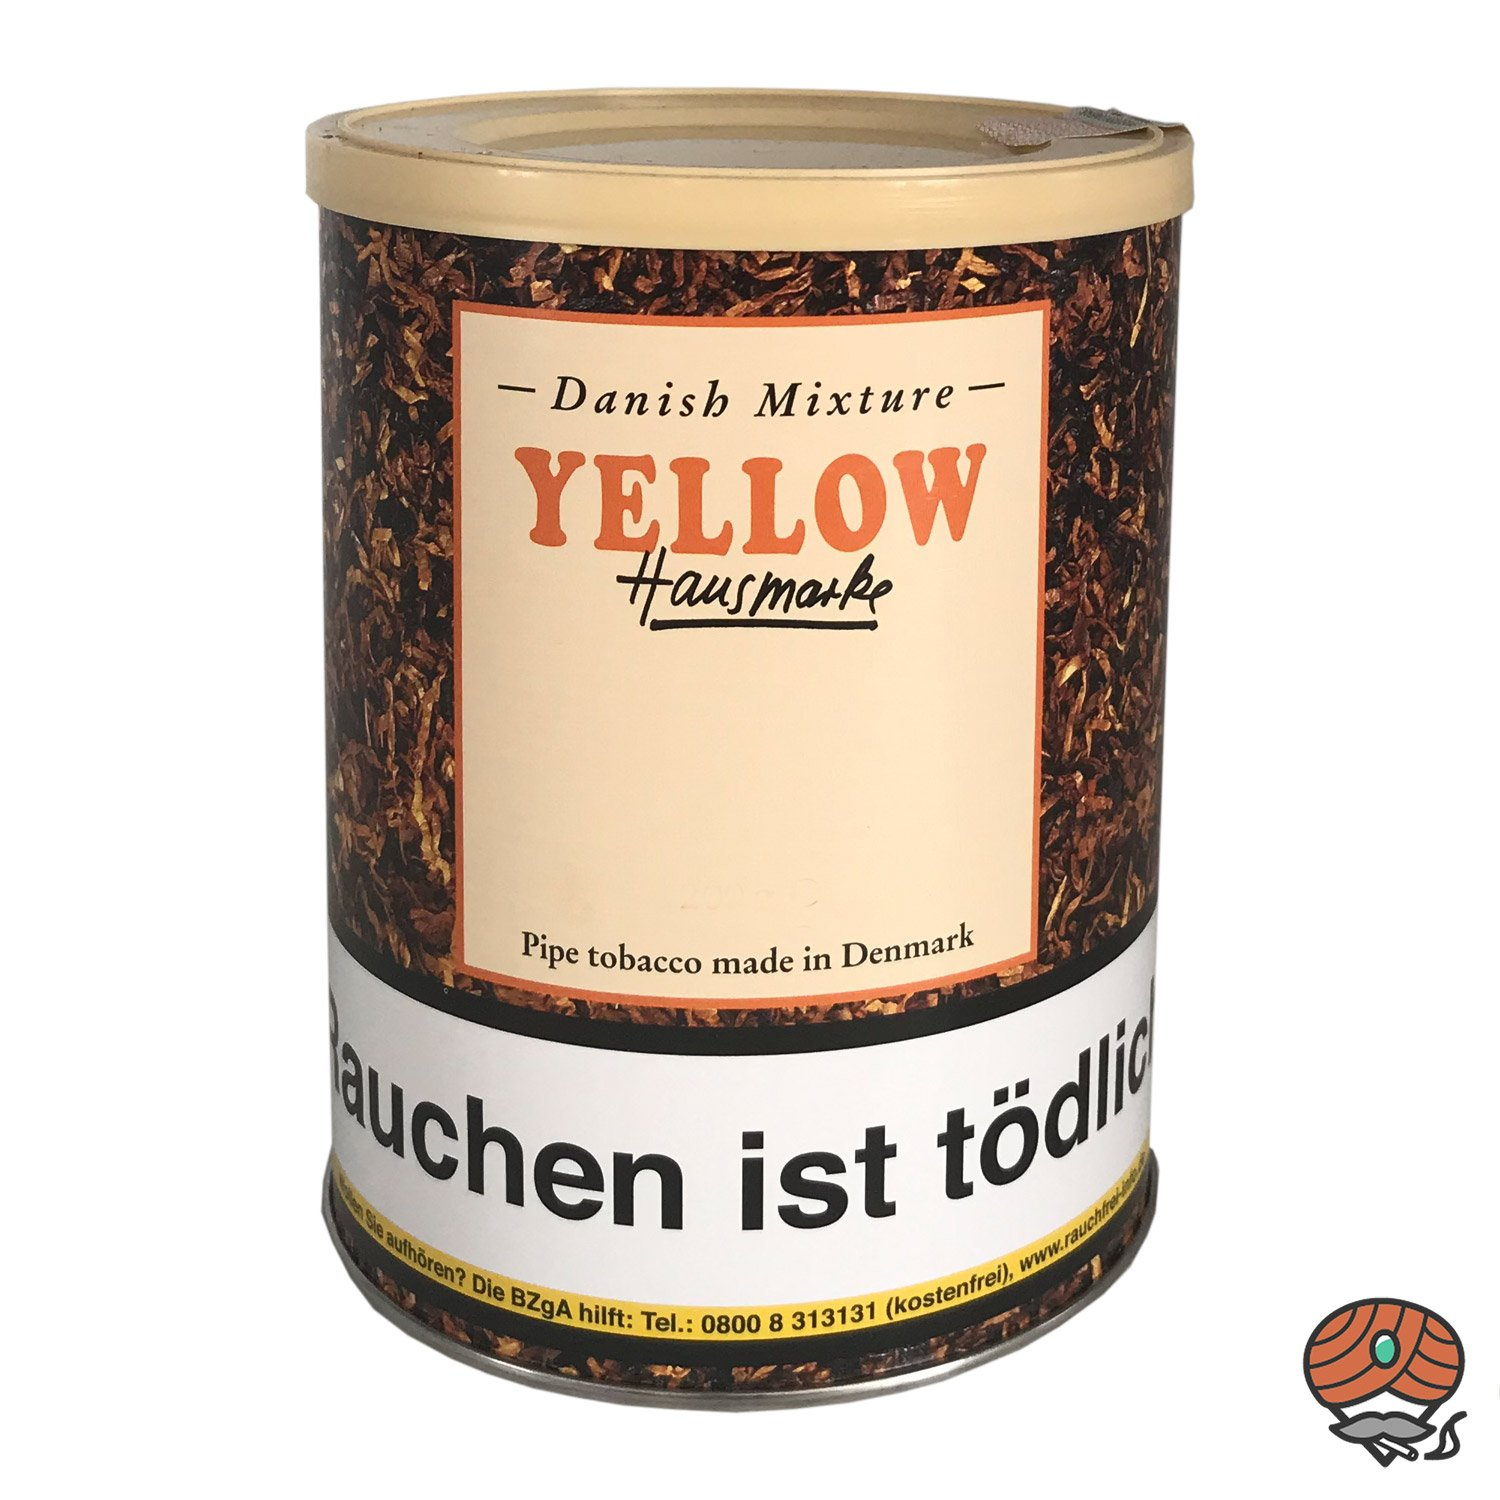 Danish Mixture Hausmarke Yellow Pfeifentabak 200g Dose